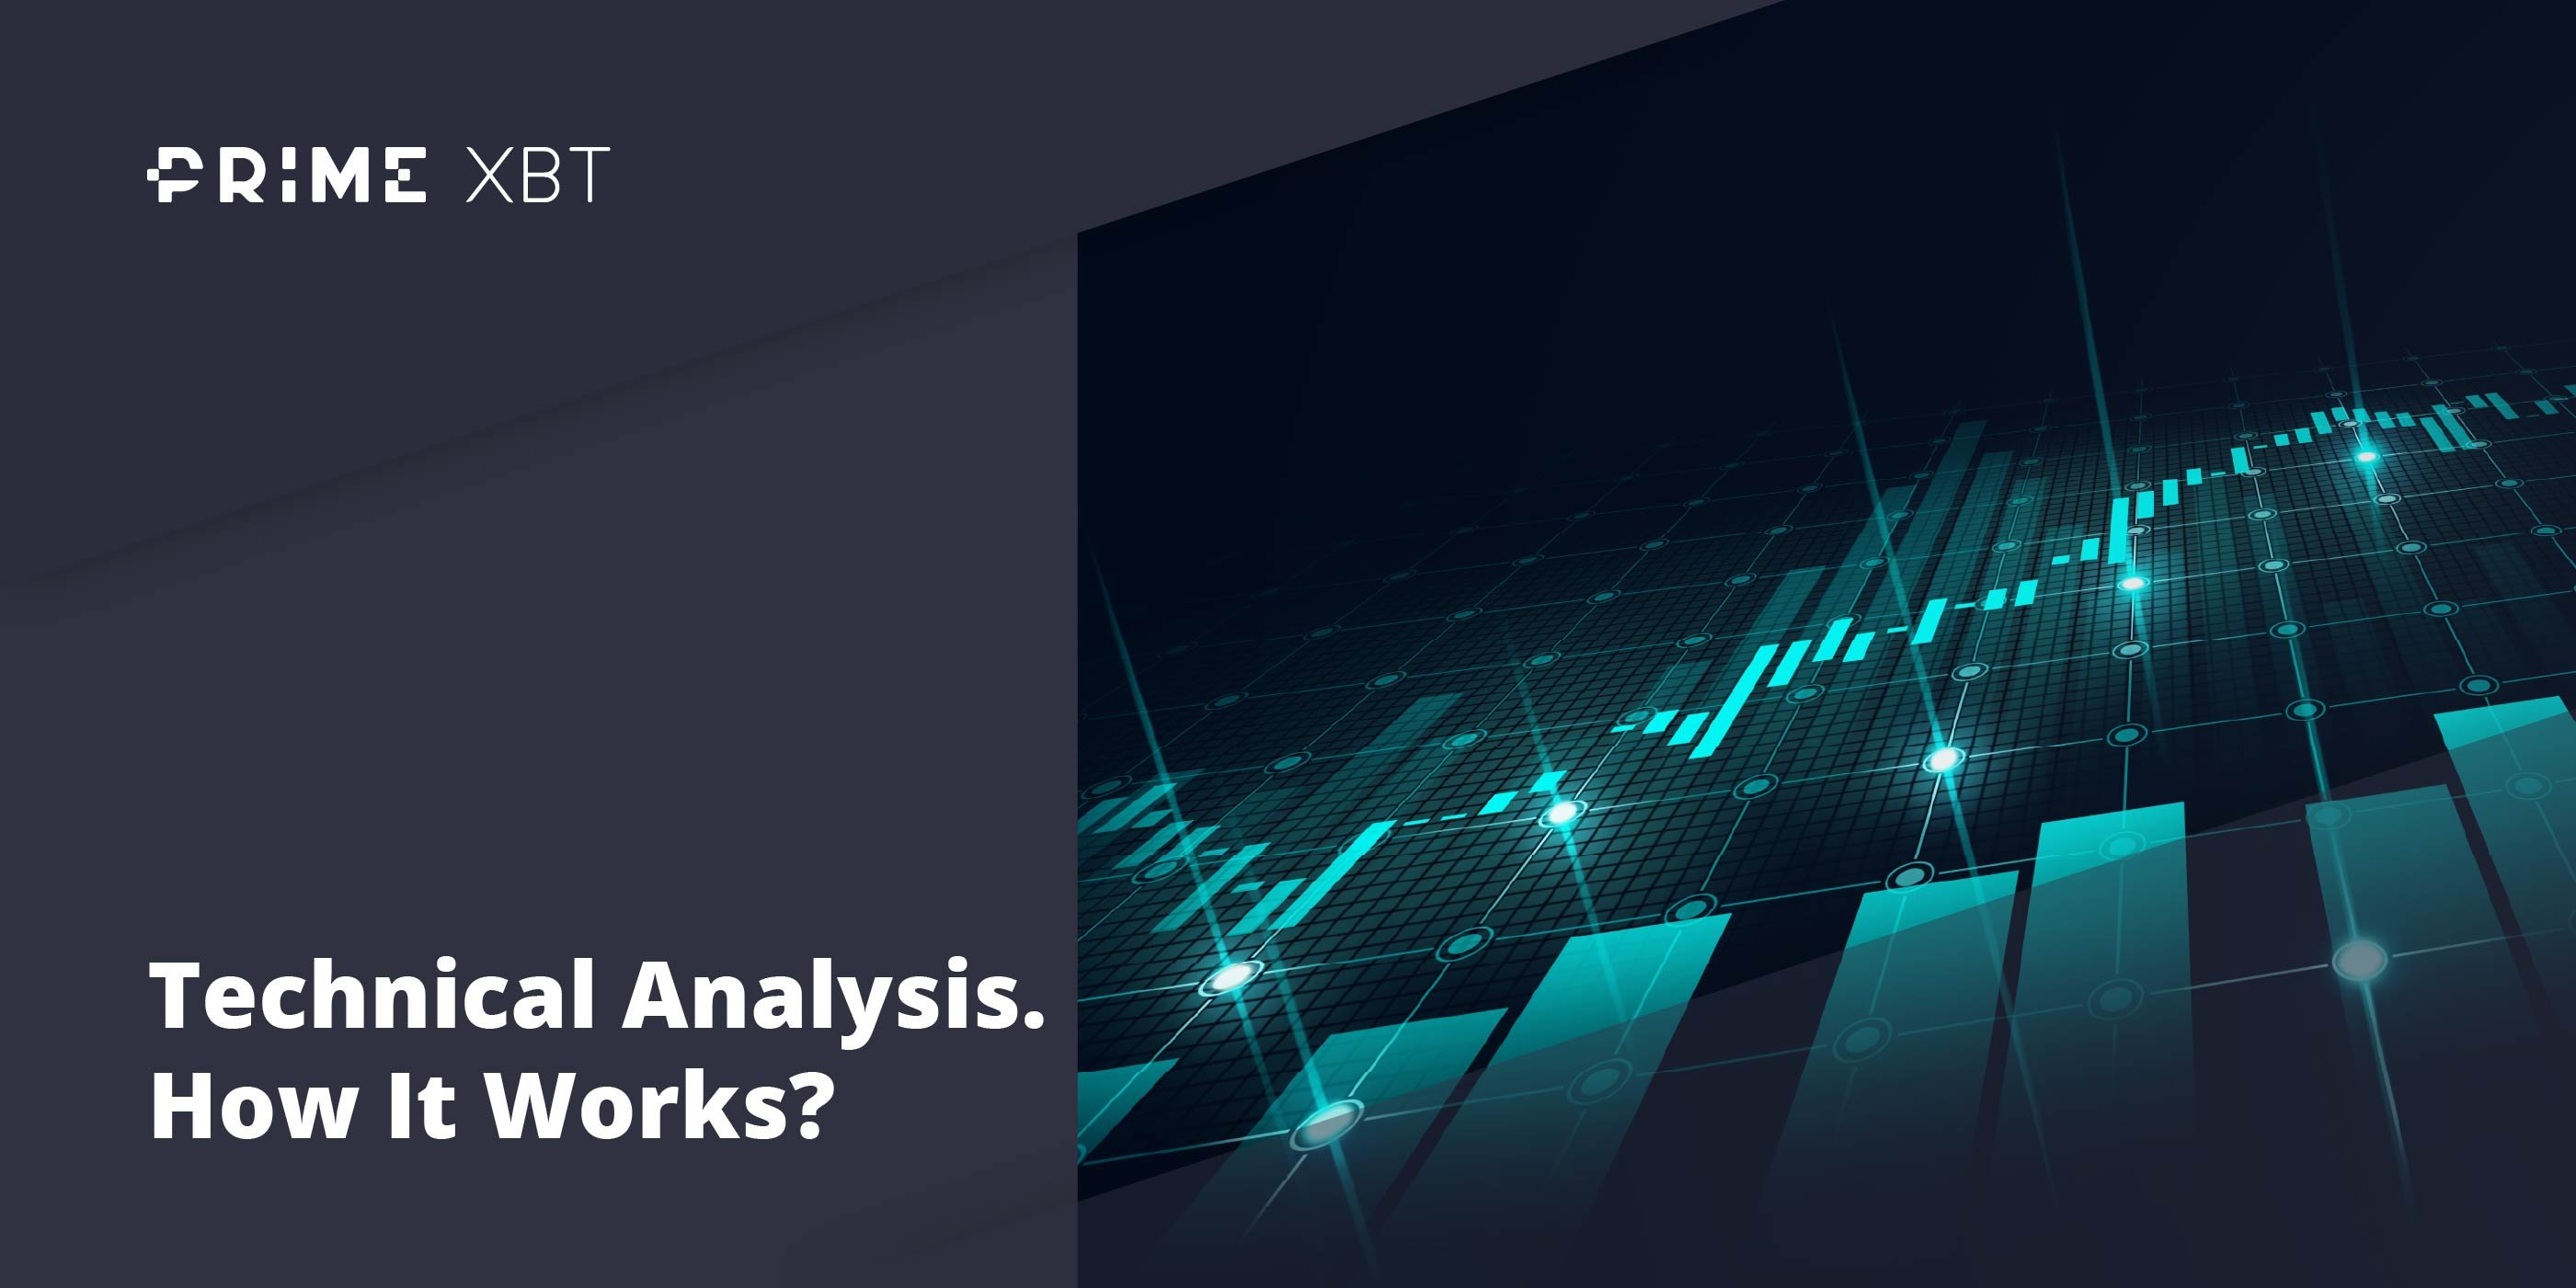 Technical Analysis: Definition, Tools & Examples - 26.11.19